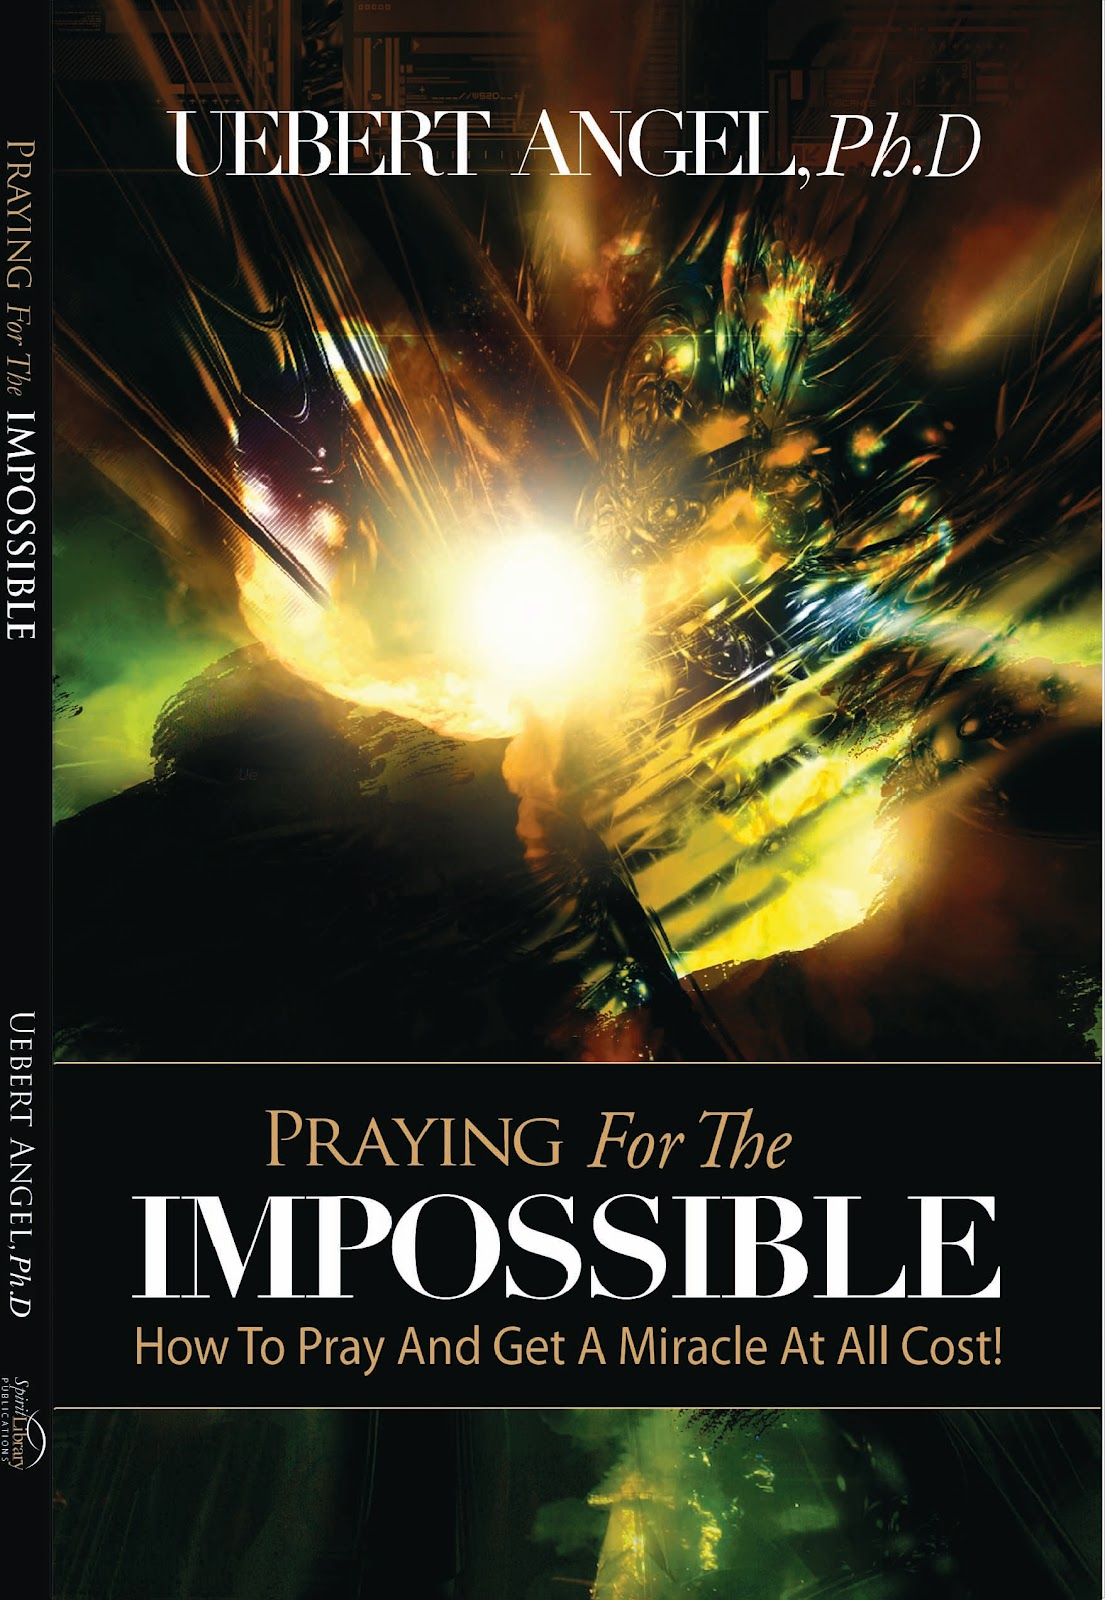 praying for the impossible by prophet uebert angel pdf